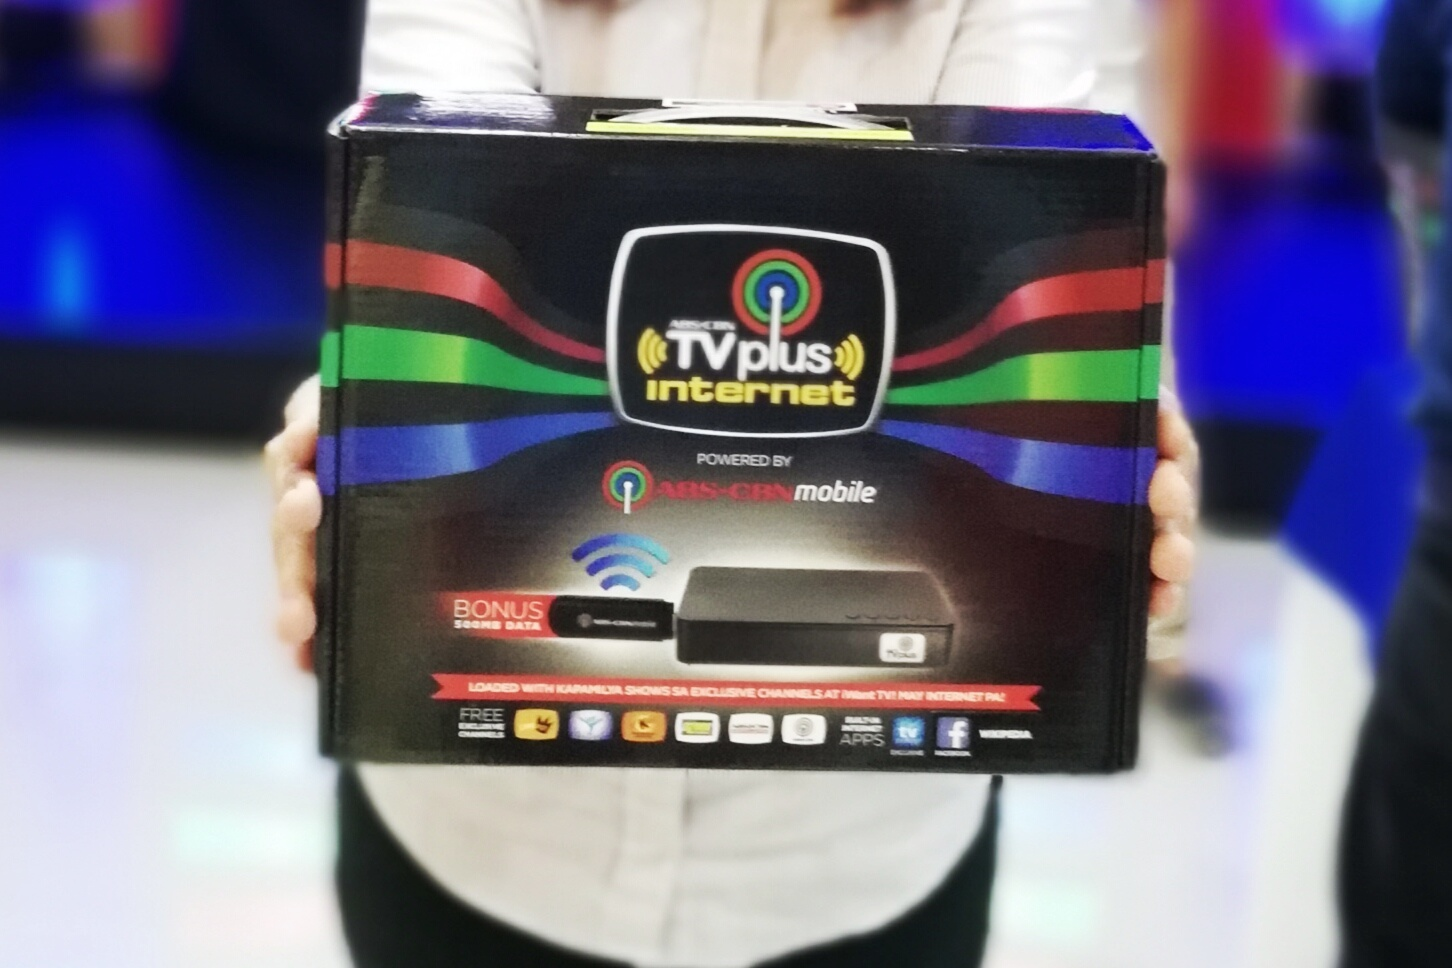 ABS CBN INTRODUCES INTERNET-READY TV PLUS IN CEBU AND DAVAO